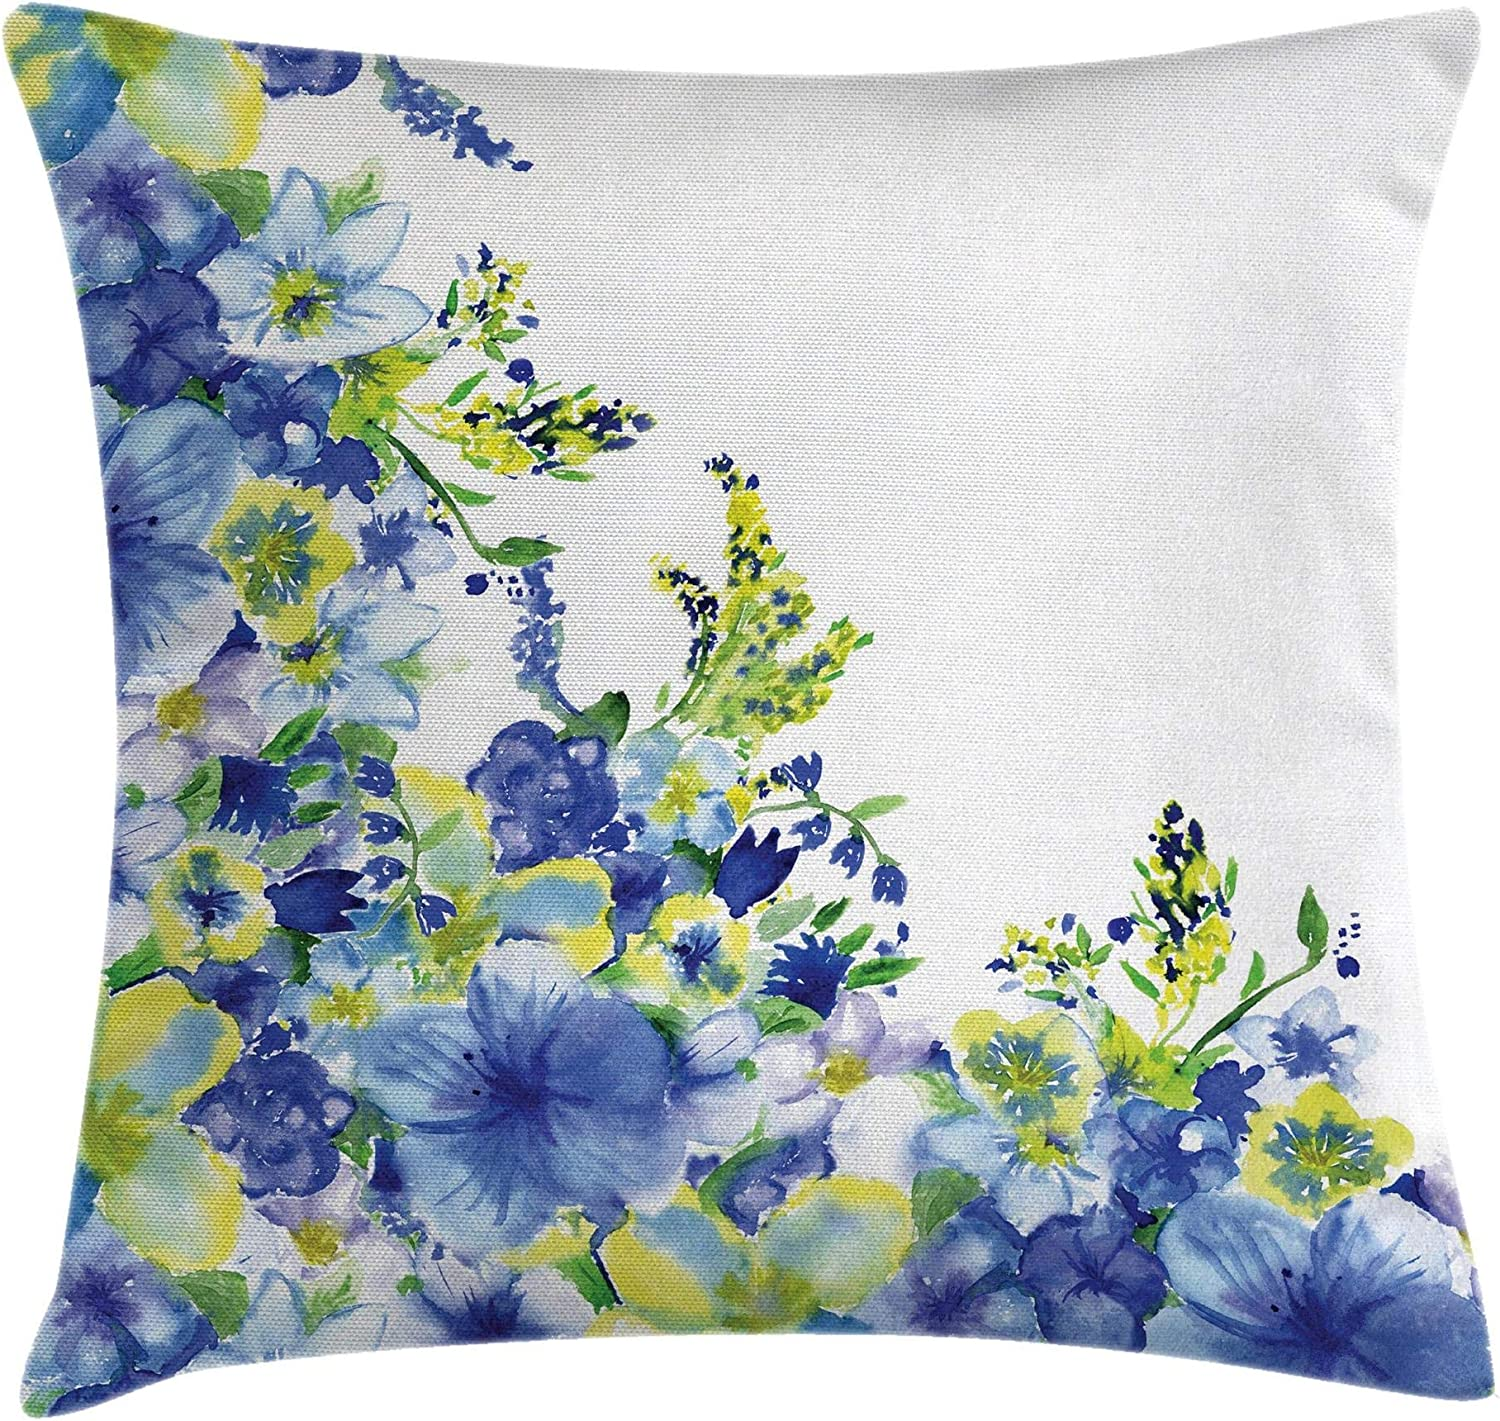 """Ambesonne Watercolor Flower Throw Pillow Cushion Cover, Motley Floret Motifs with Splash Anemone Iris Revival of Nature Theme, Decorative Square Accent Pillow Case, 24"""" X 24"""", Blue Yellow"""